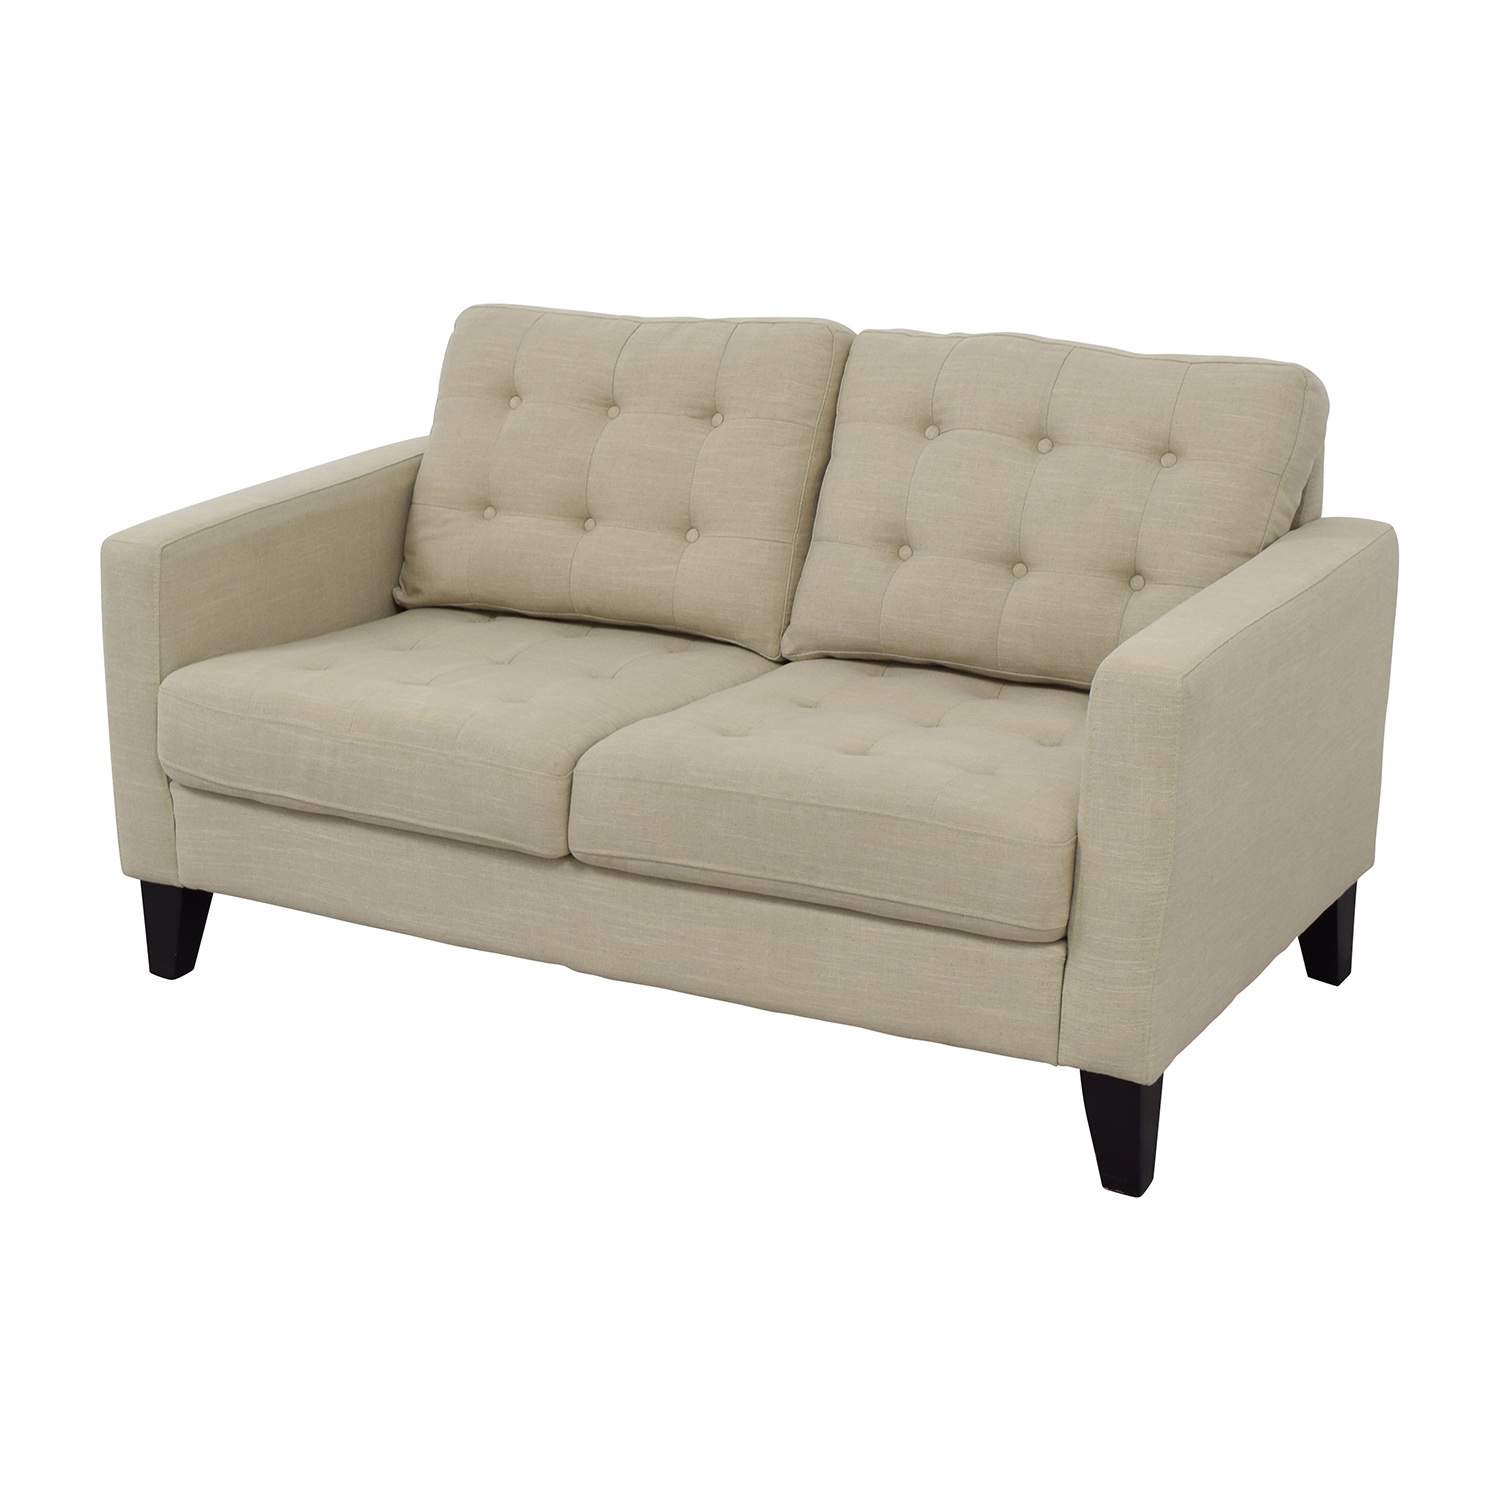 32 off pier 1 imports pier 1 imports putty tan tufted for Classic loveseat